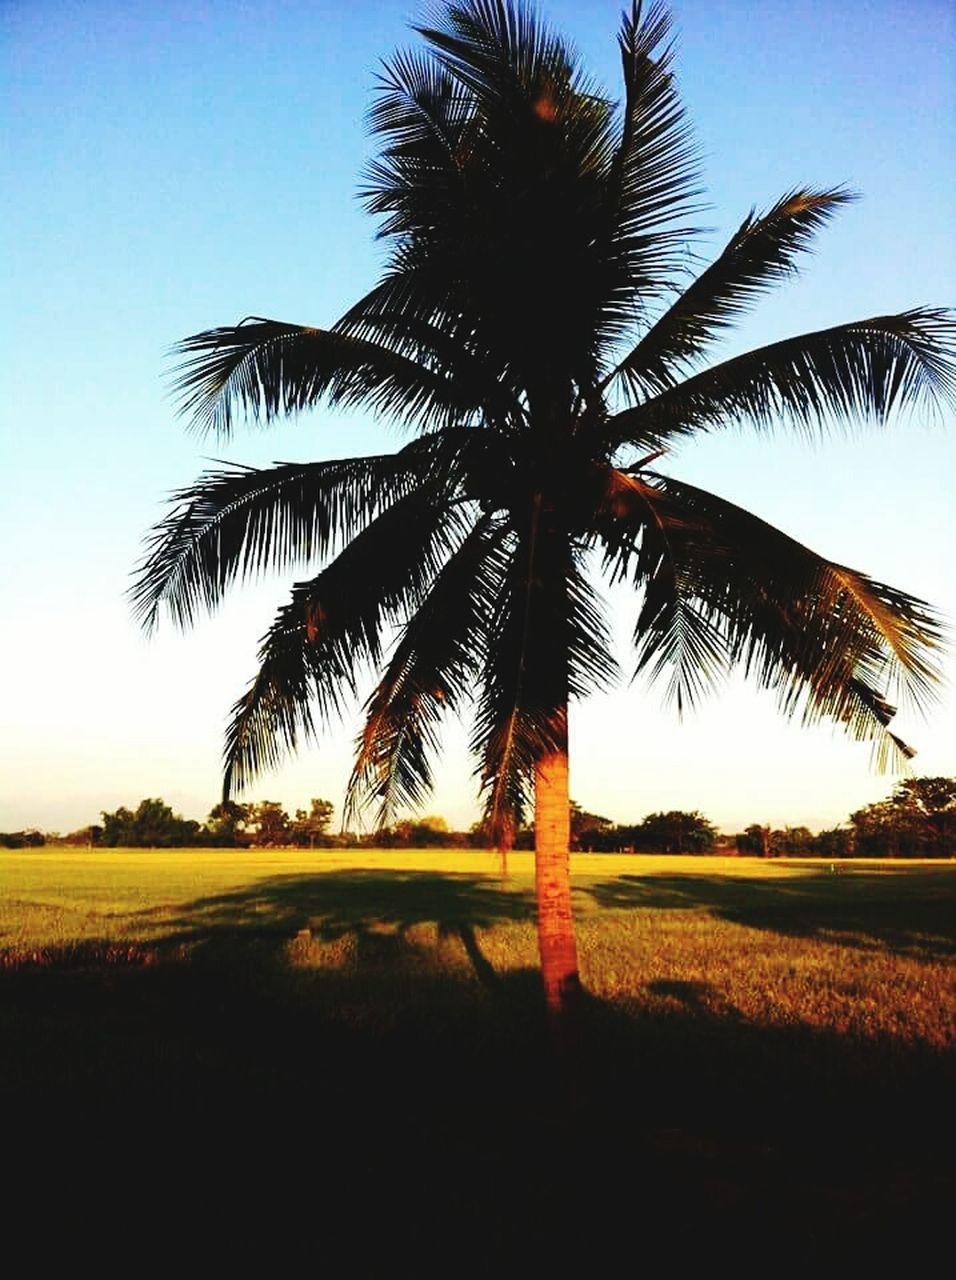 tree, palm tree, scenics, tranquility, landscape, tranquil scene, beauty in nature, tree trunk, field, nature, no people, growth, sky, outdoors, day, clear sky, grass